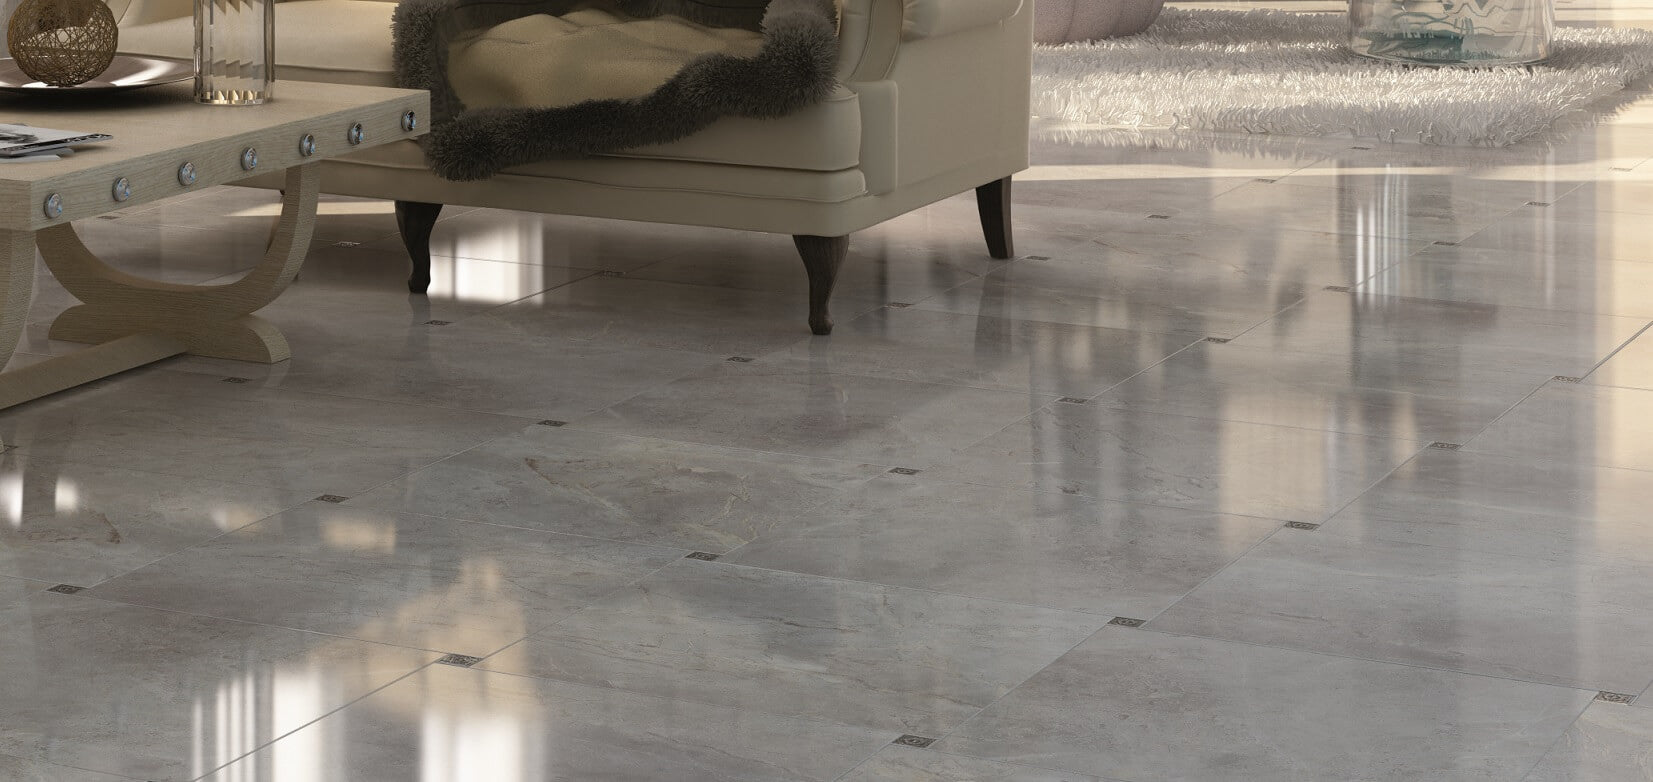 ... Tiffany Large Grey Porcelain Floor Tiles With Cream Couch ...